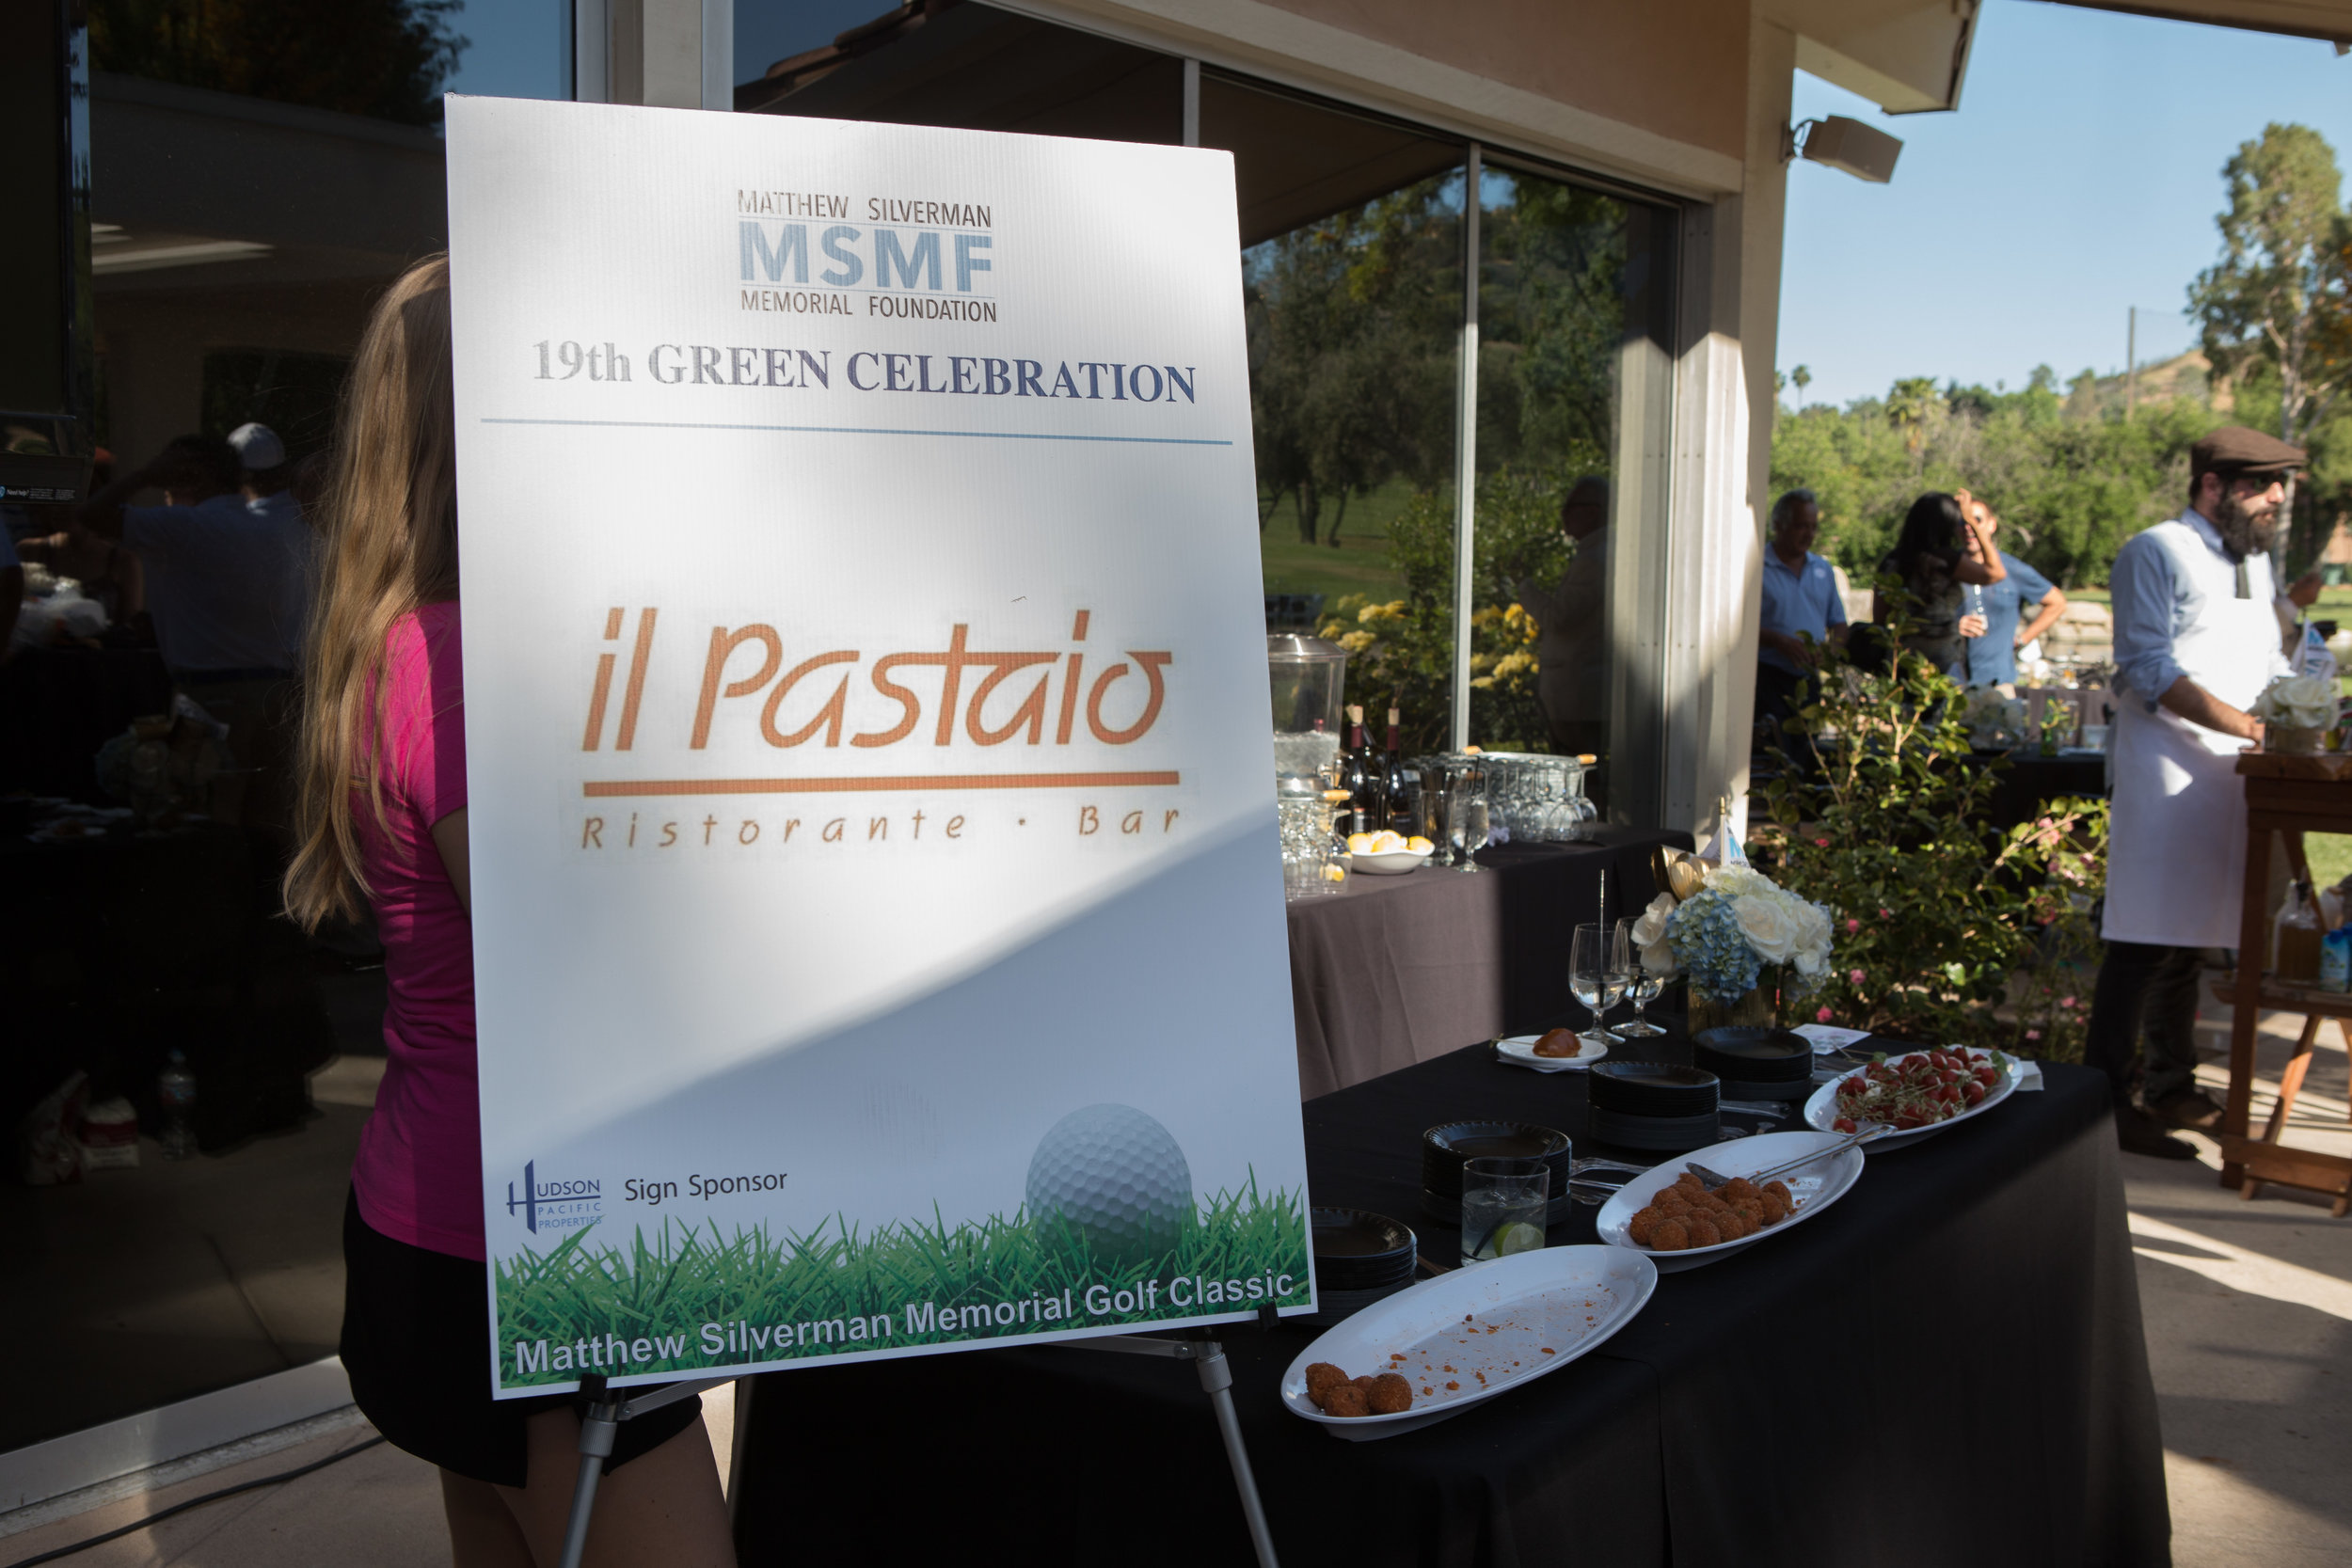 IMG_8188-SPONSOR SIGN-Il Pastaio.jpg